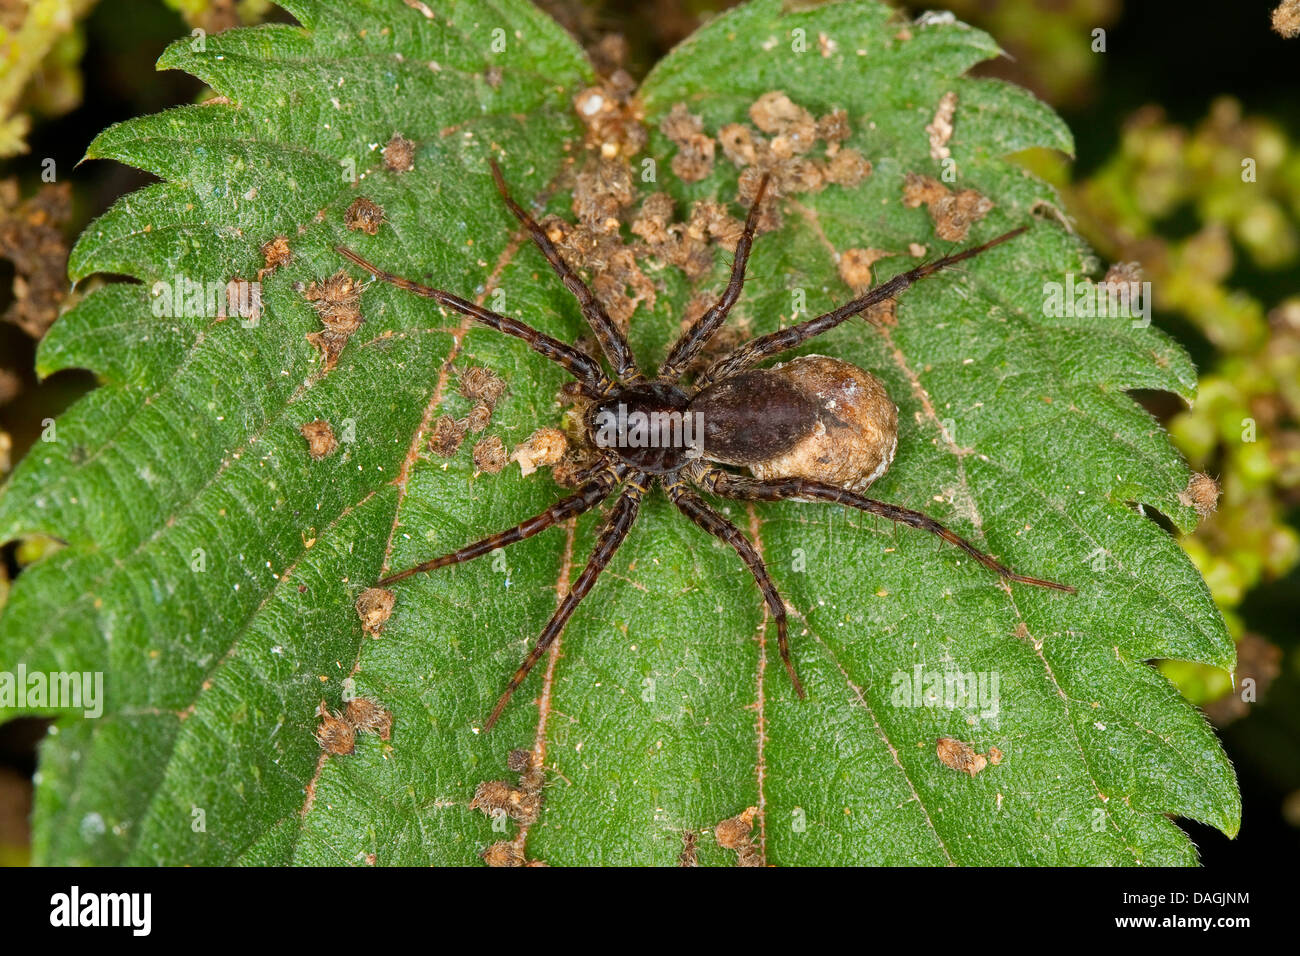 Wolfspinne (Pardosa spec., ), female with coccon on her back, Germany - Stock Image